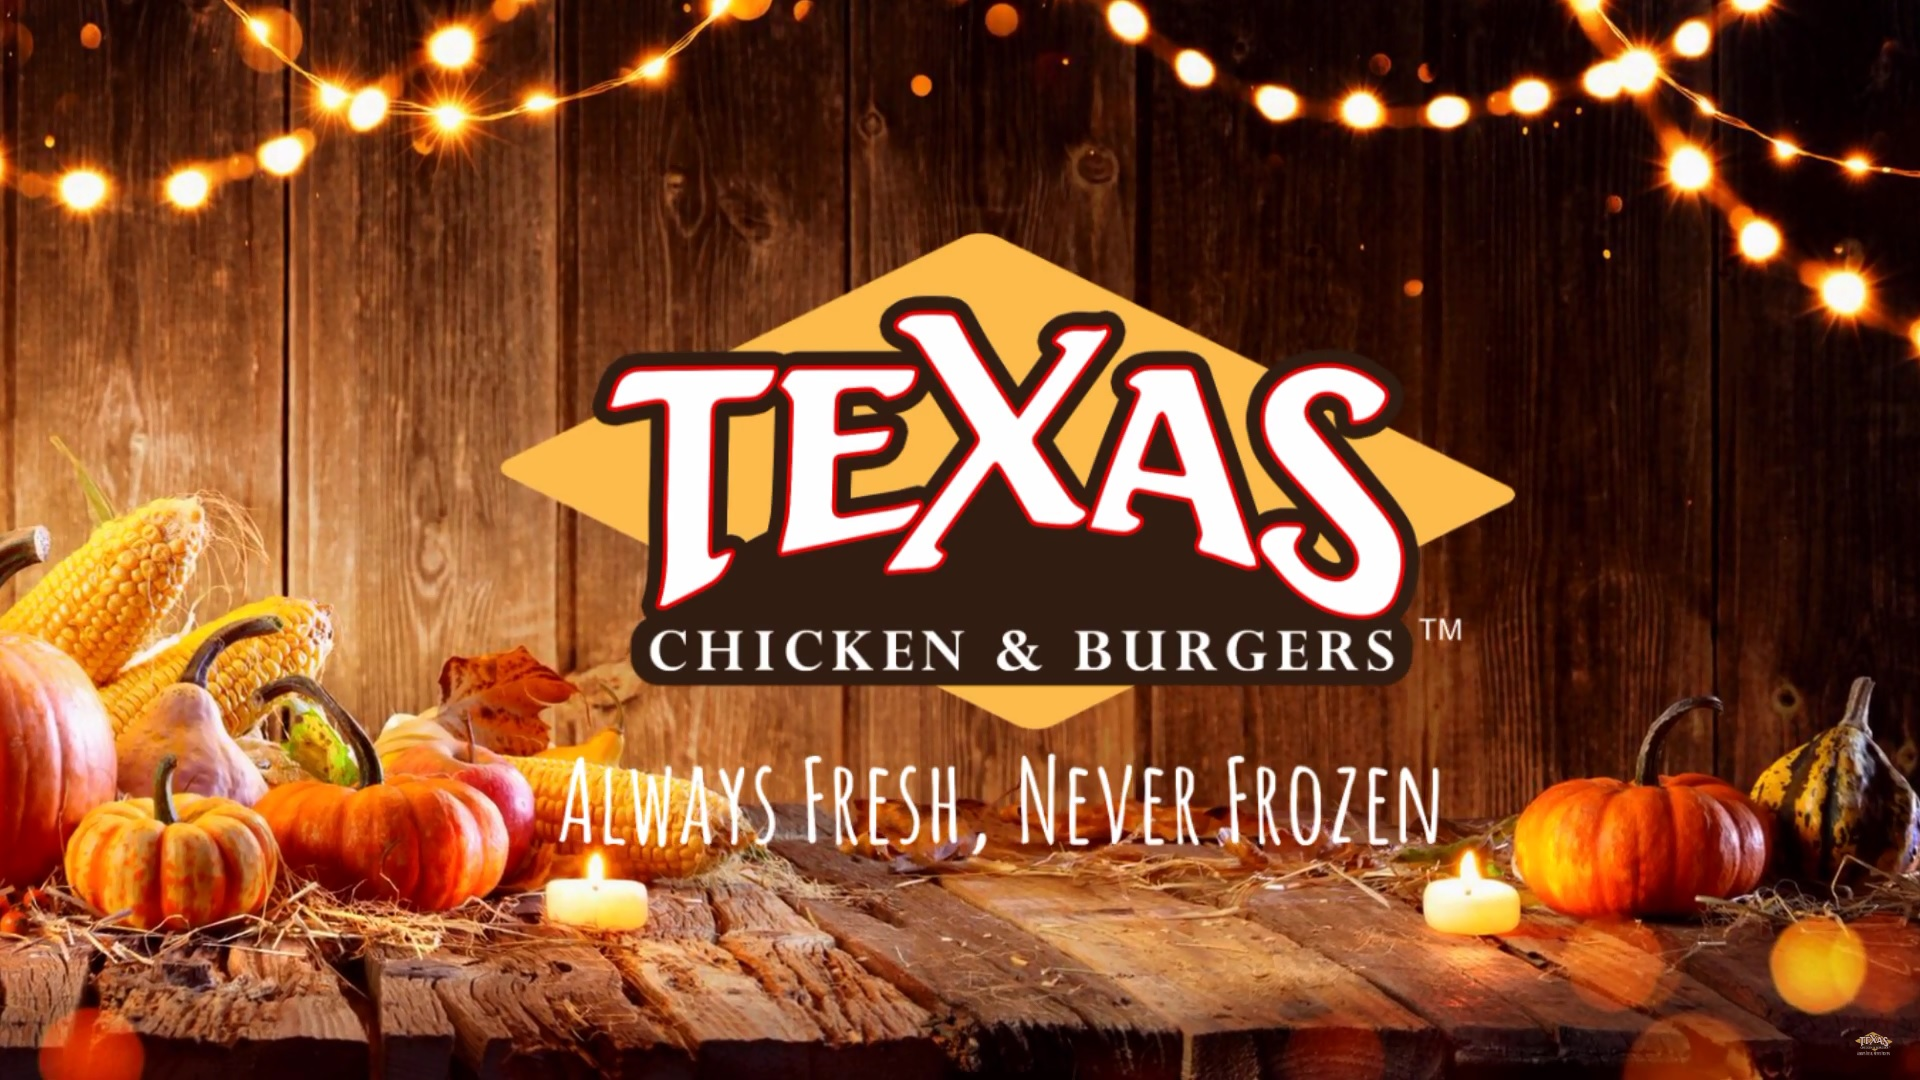 Texas Chicken and Burgers Participation in the 56th Annual Thanksgiving Day Parade in New Rochelle